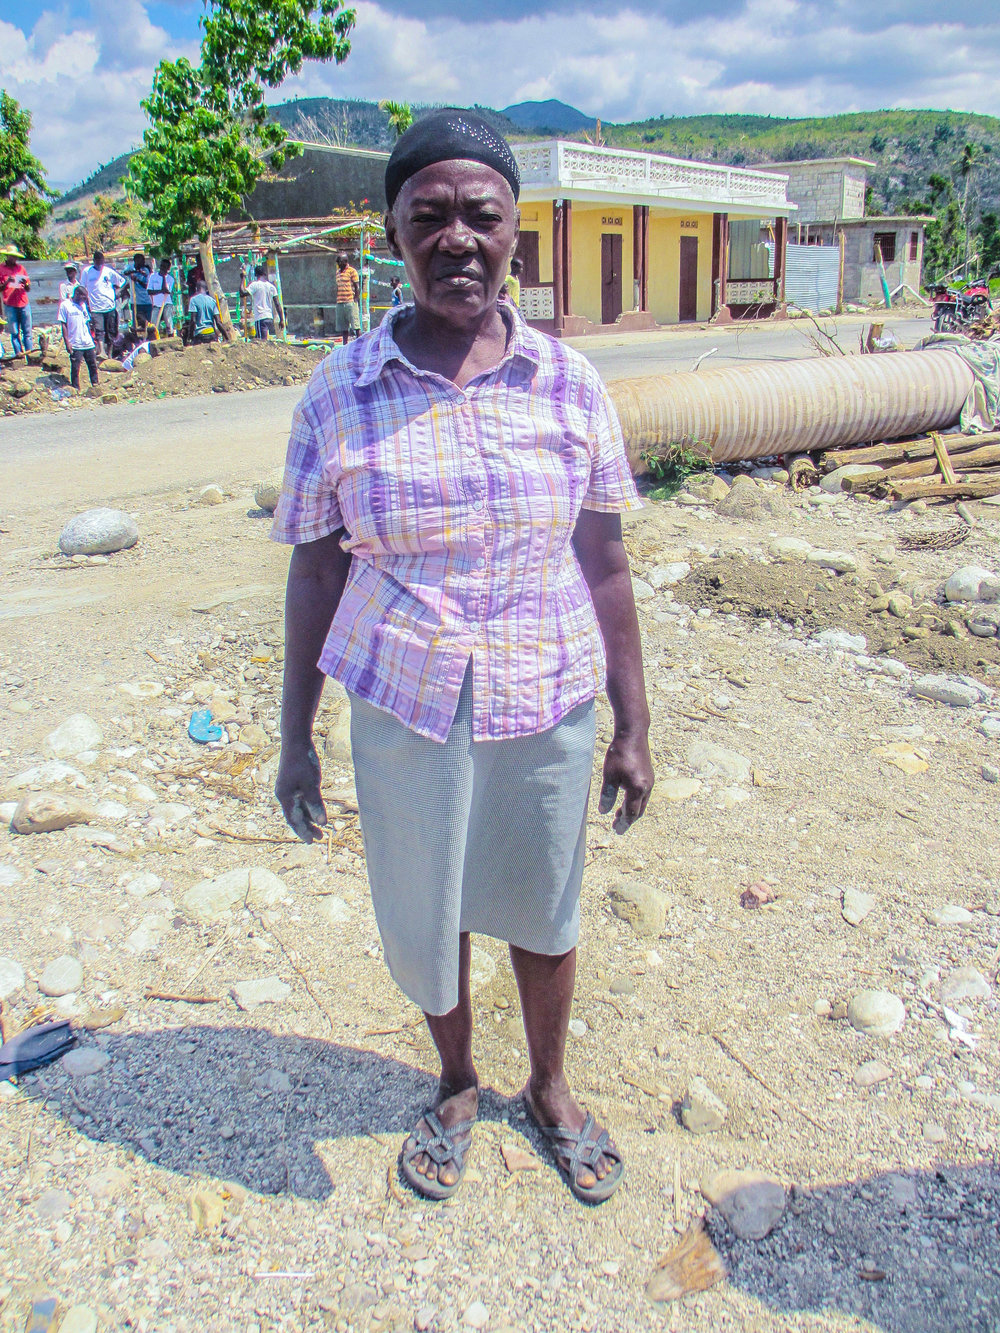 Standing in the spot where her house once stood, a mother explains that she has no resources to rebuild the home destroyed by Hurricane Matthew.